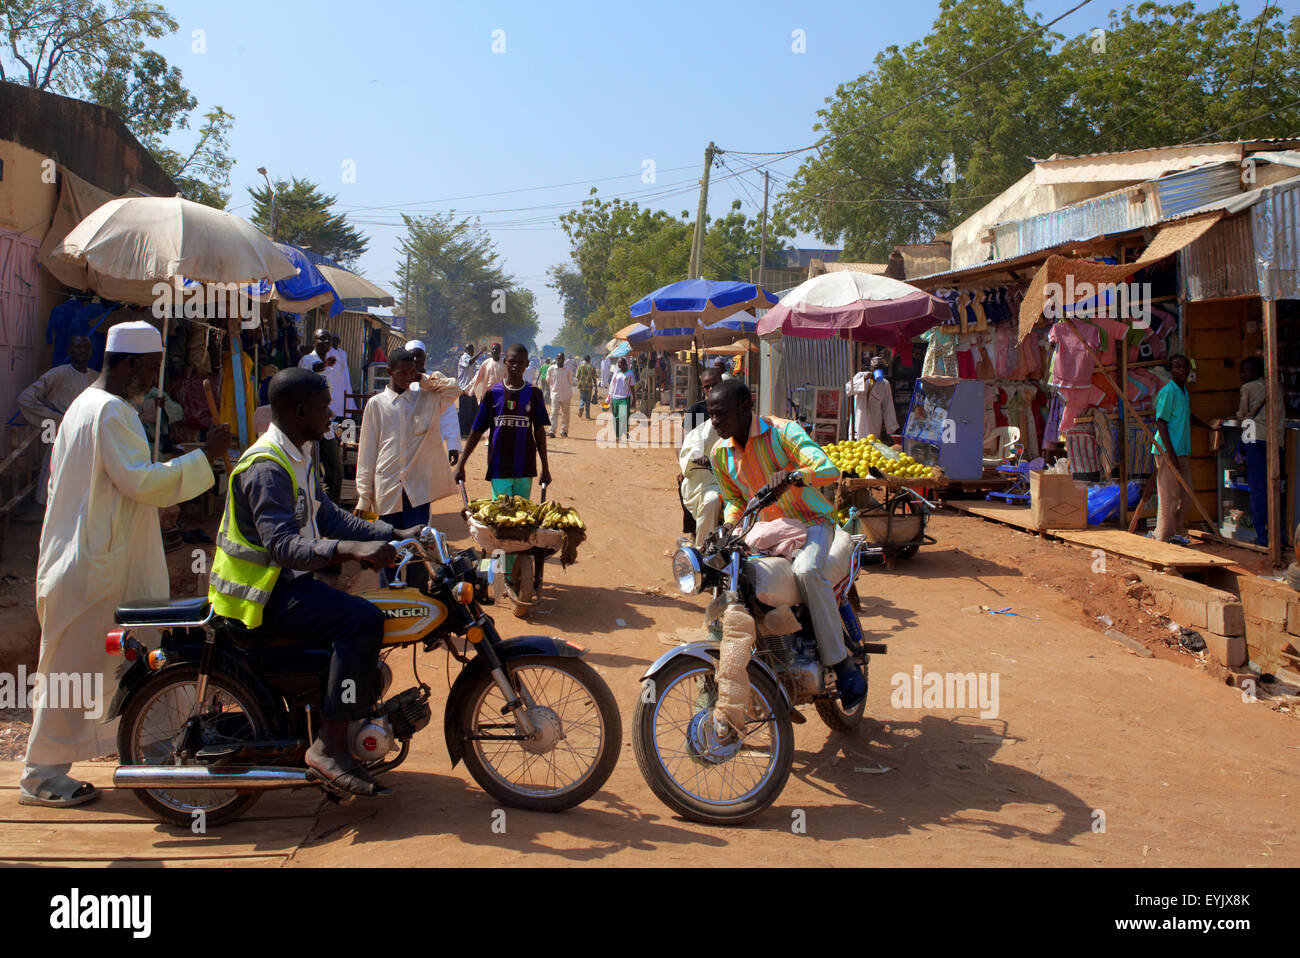 Africa, Cameroon, North Province, Garoua city, the market and the traffic with the moto taxis - Stock Image